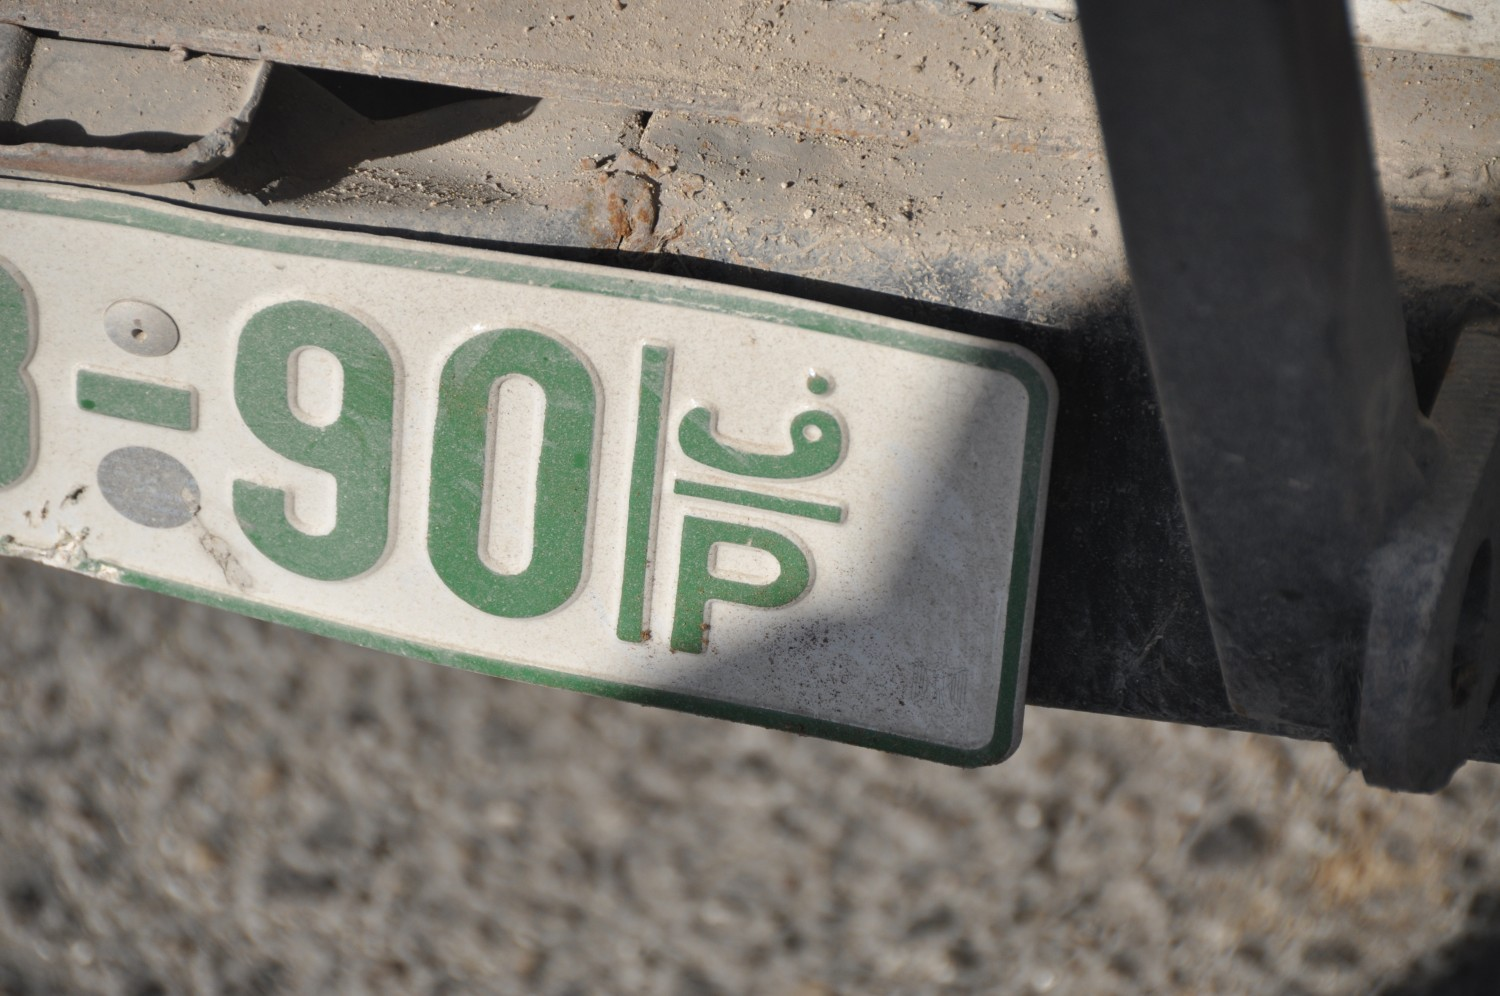 Palestinian license plate